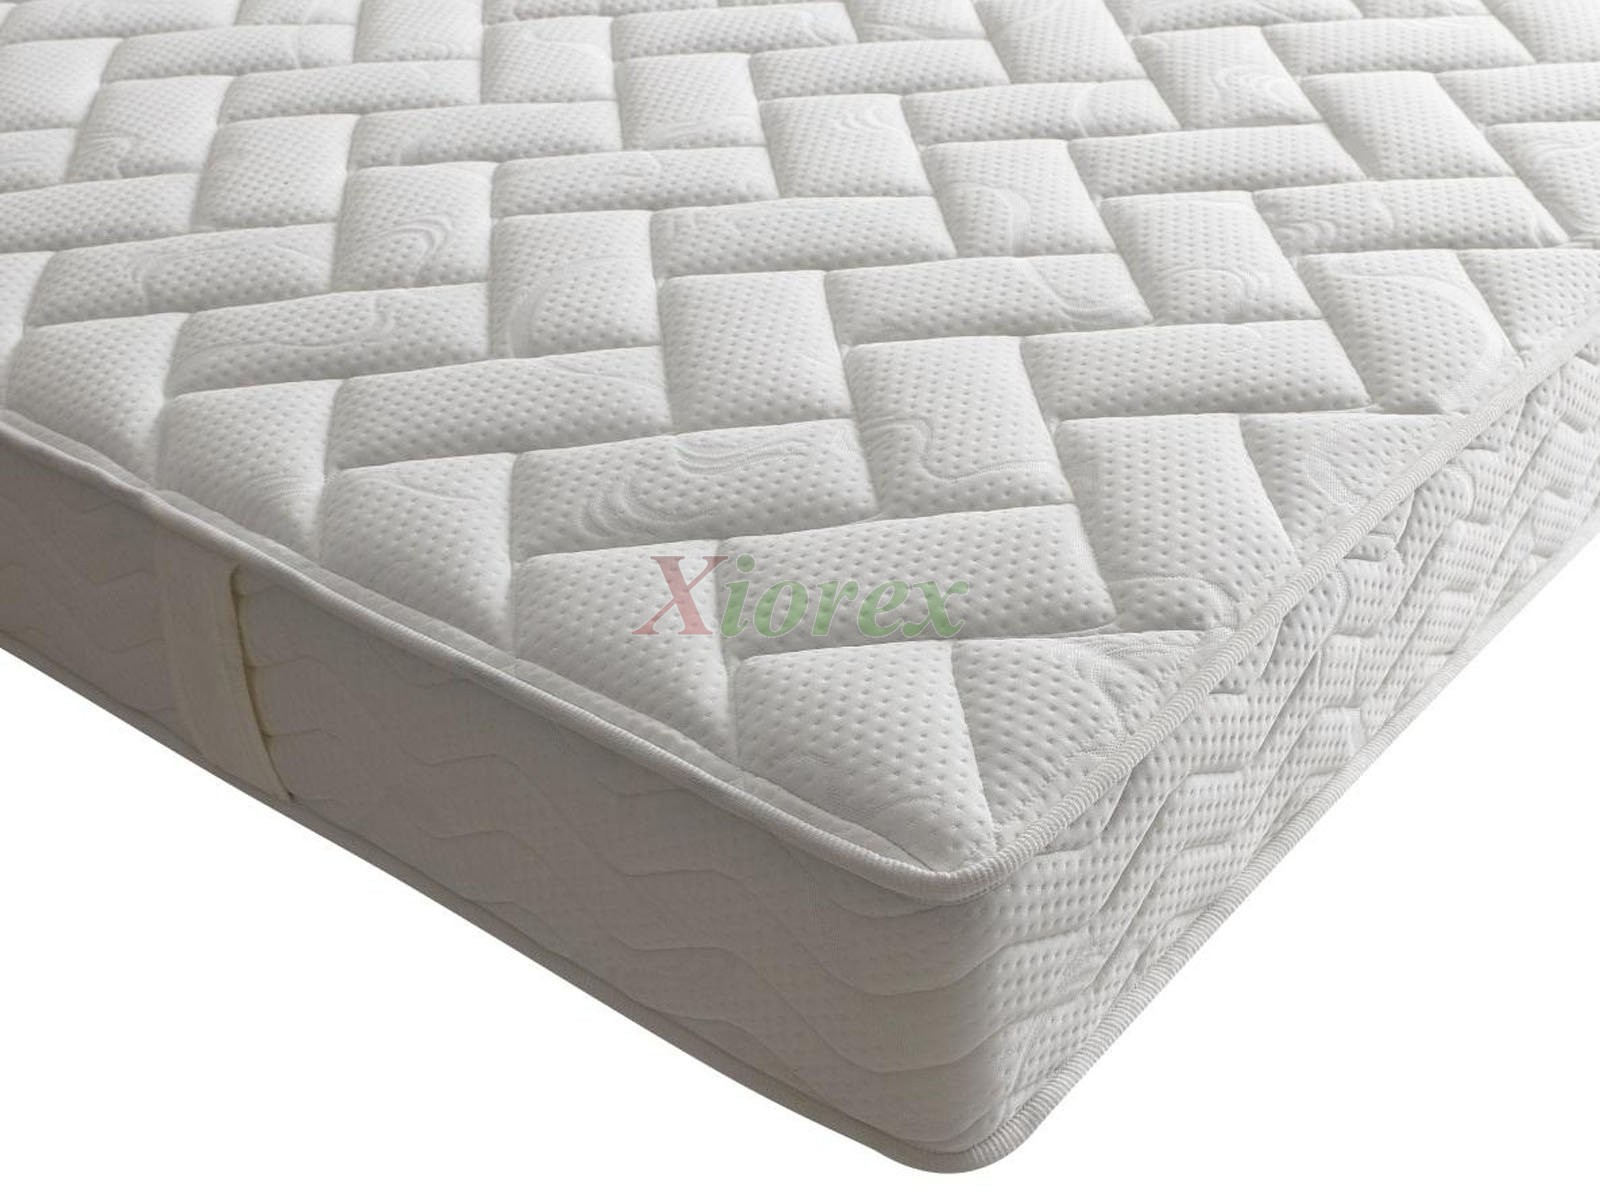 2 Sided Mattress Levinston Double Sided Firm Set Sealy